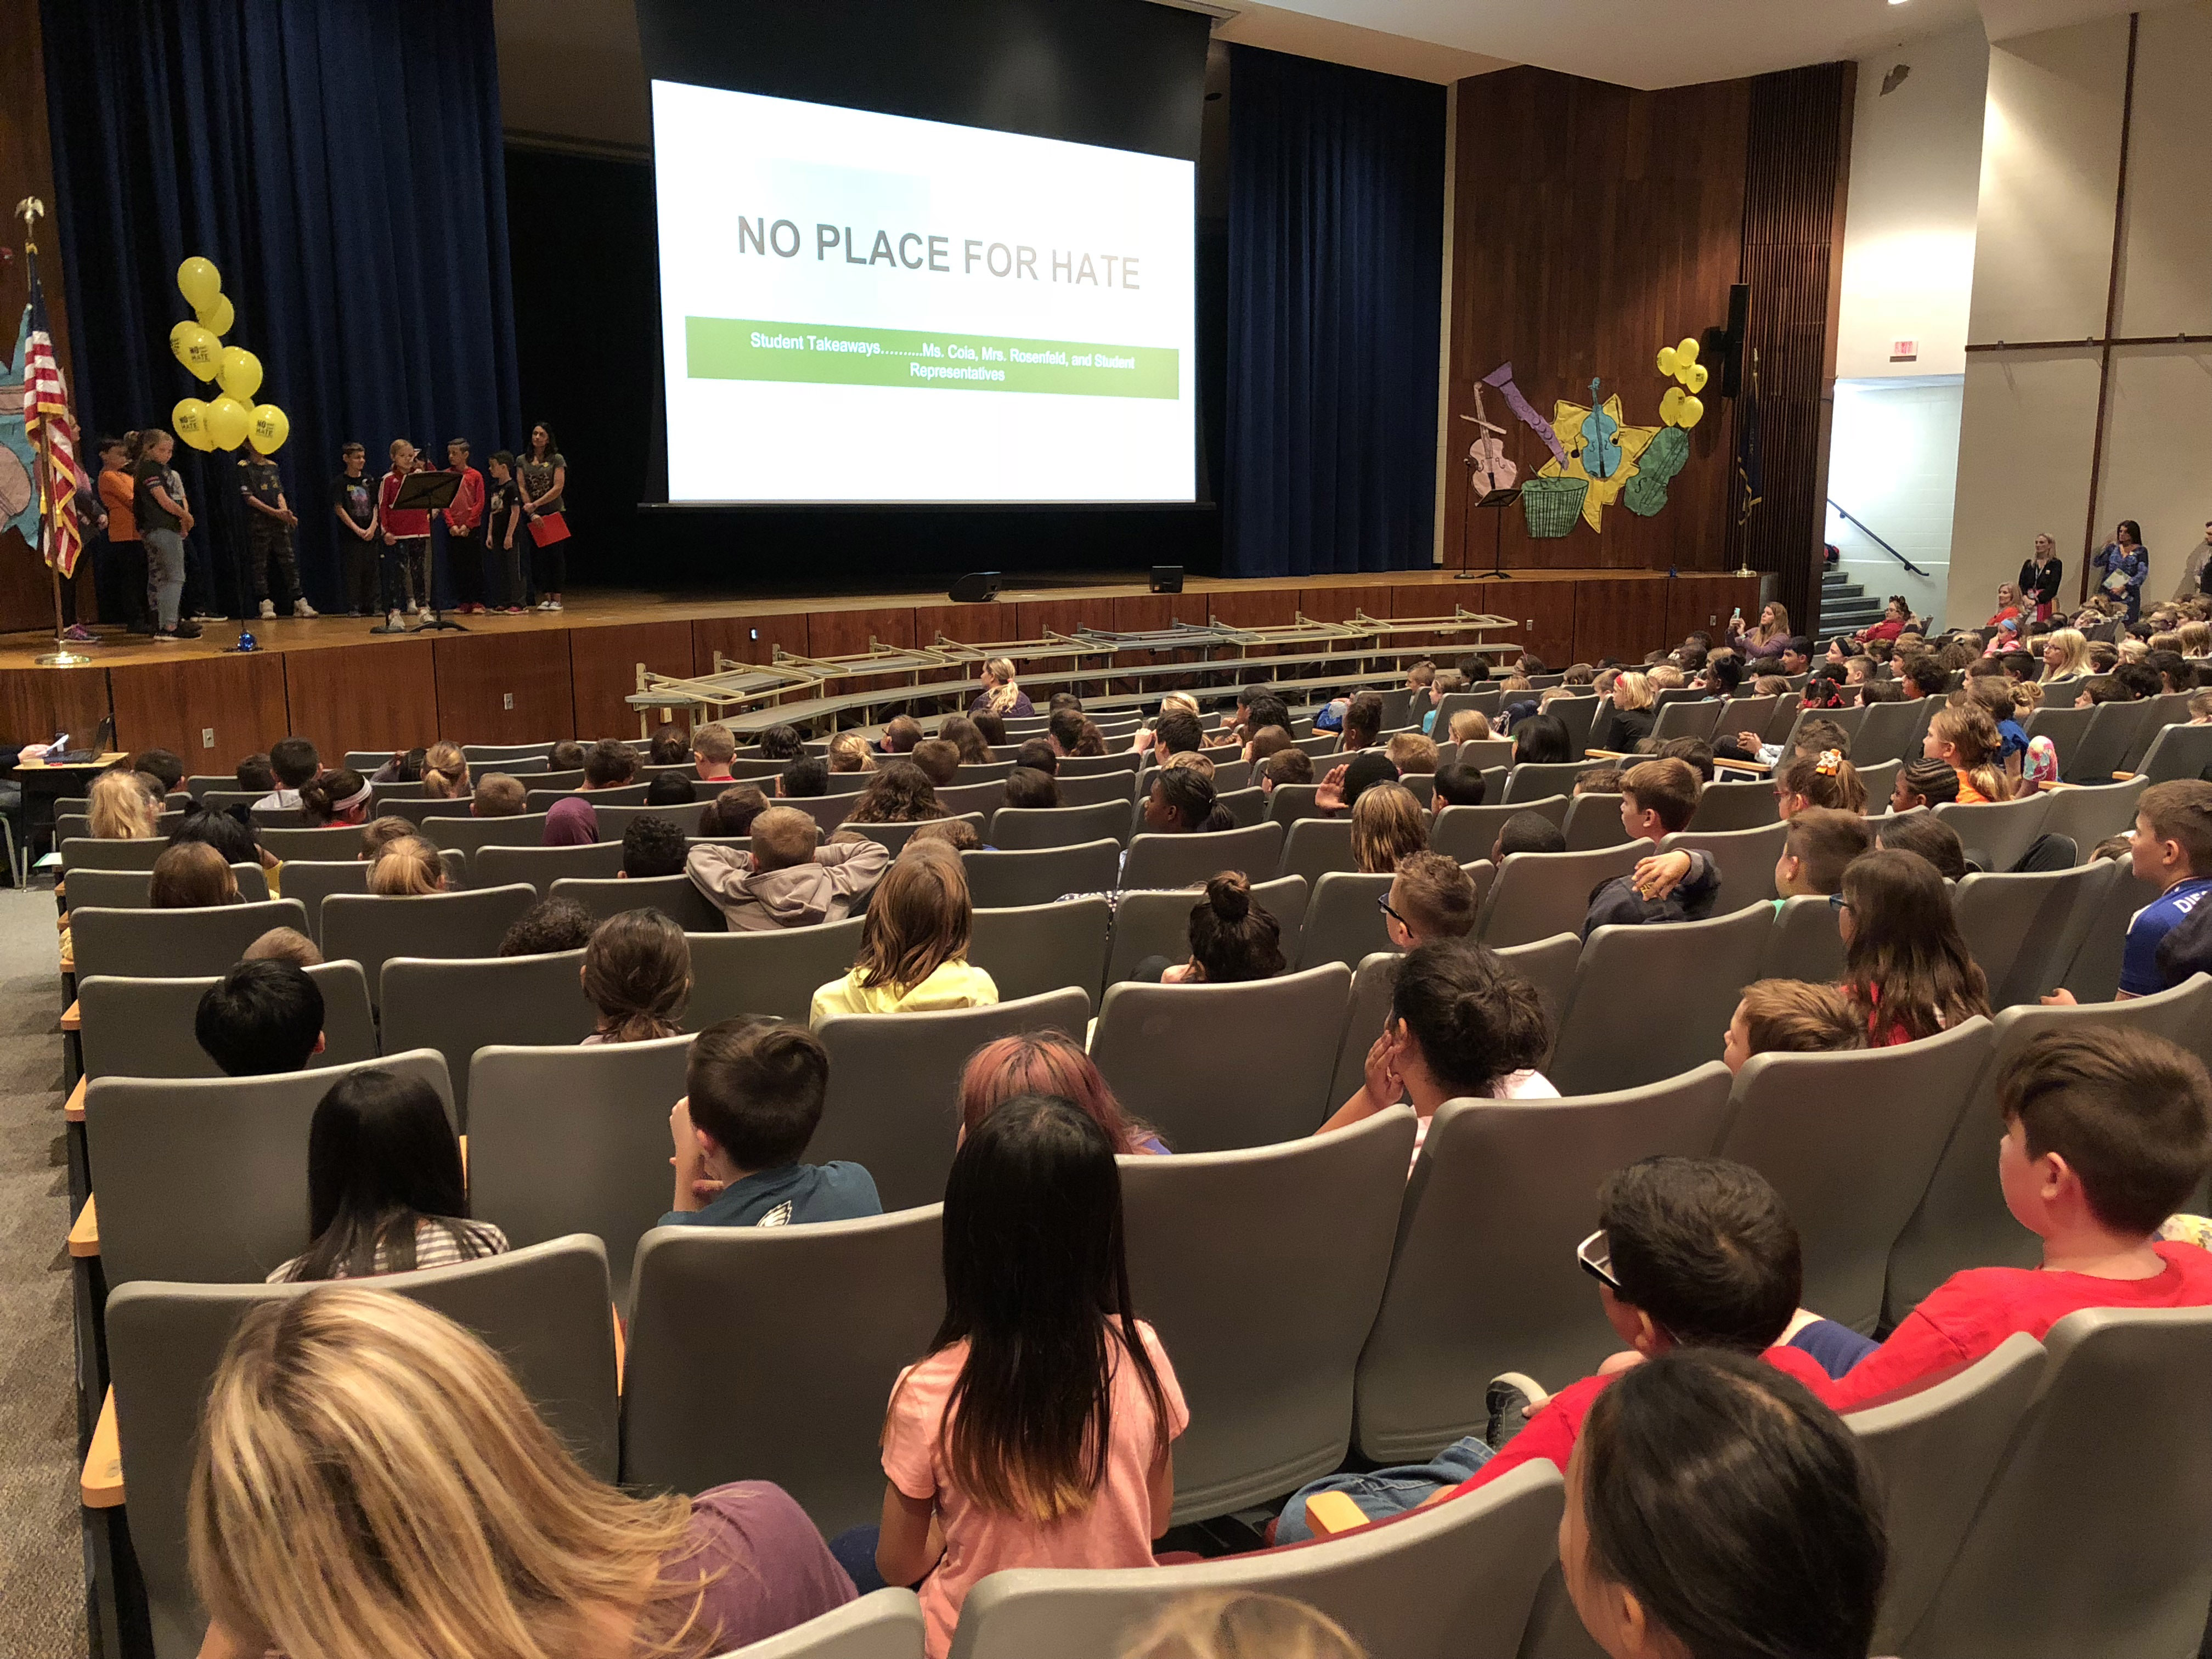 Auditorium of kids looking at students on stage with No Place for Hate on screen